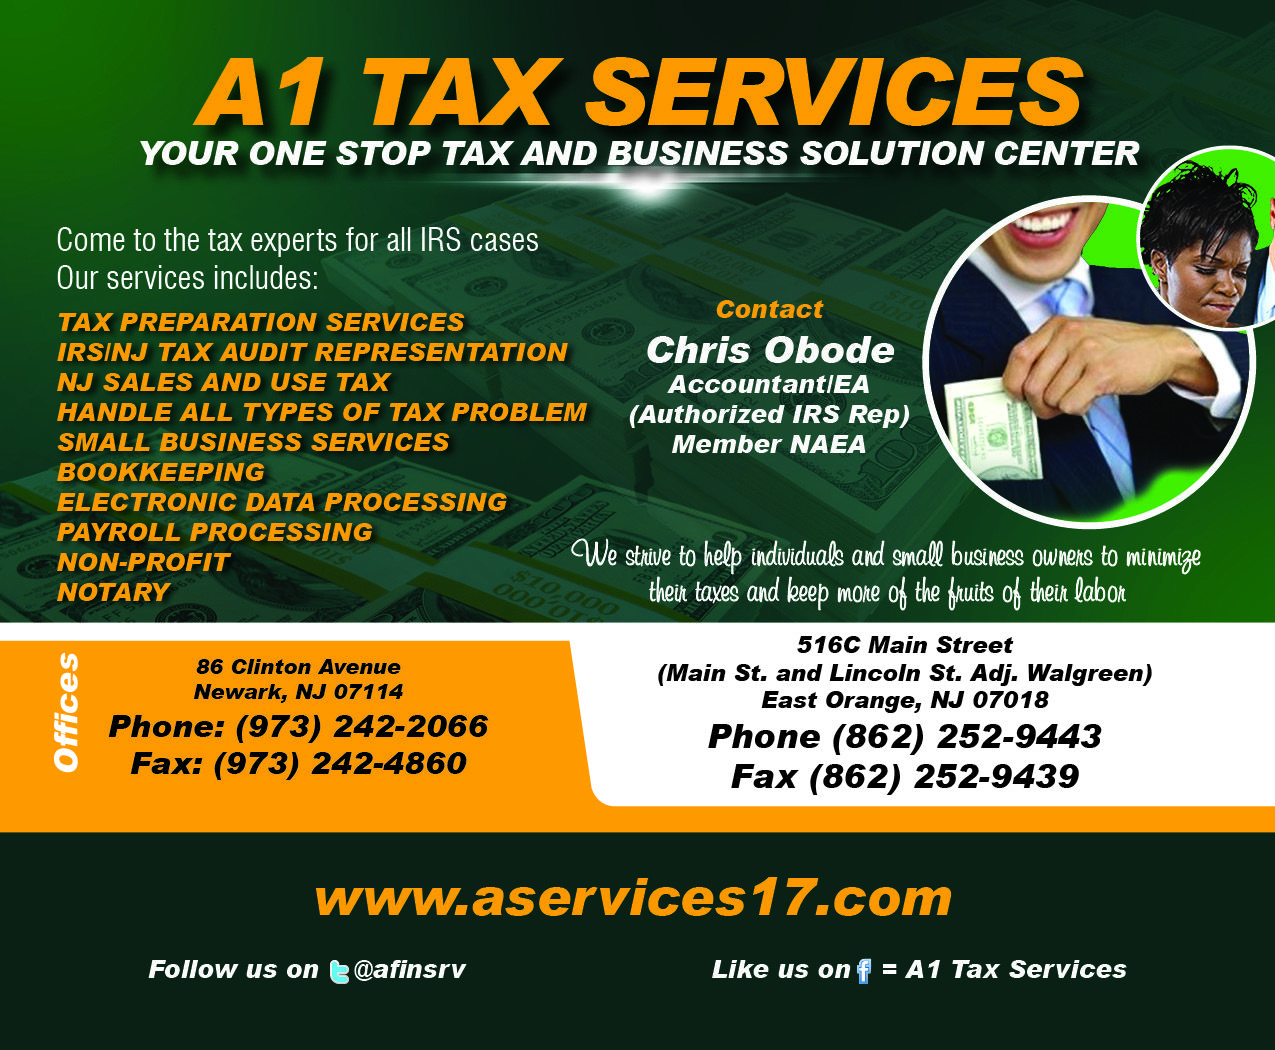 A1 Tax Services is your one stop tax and bookkeeping solution center.